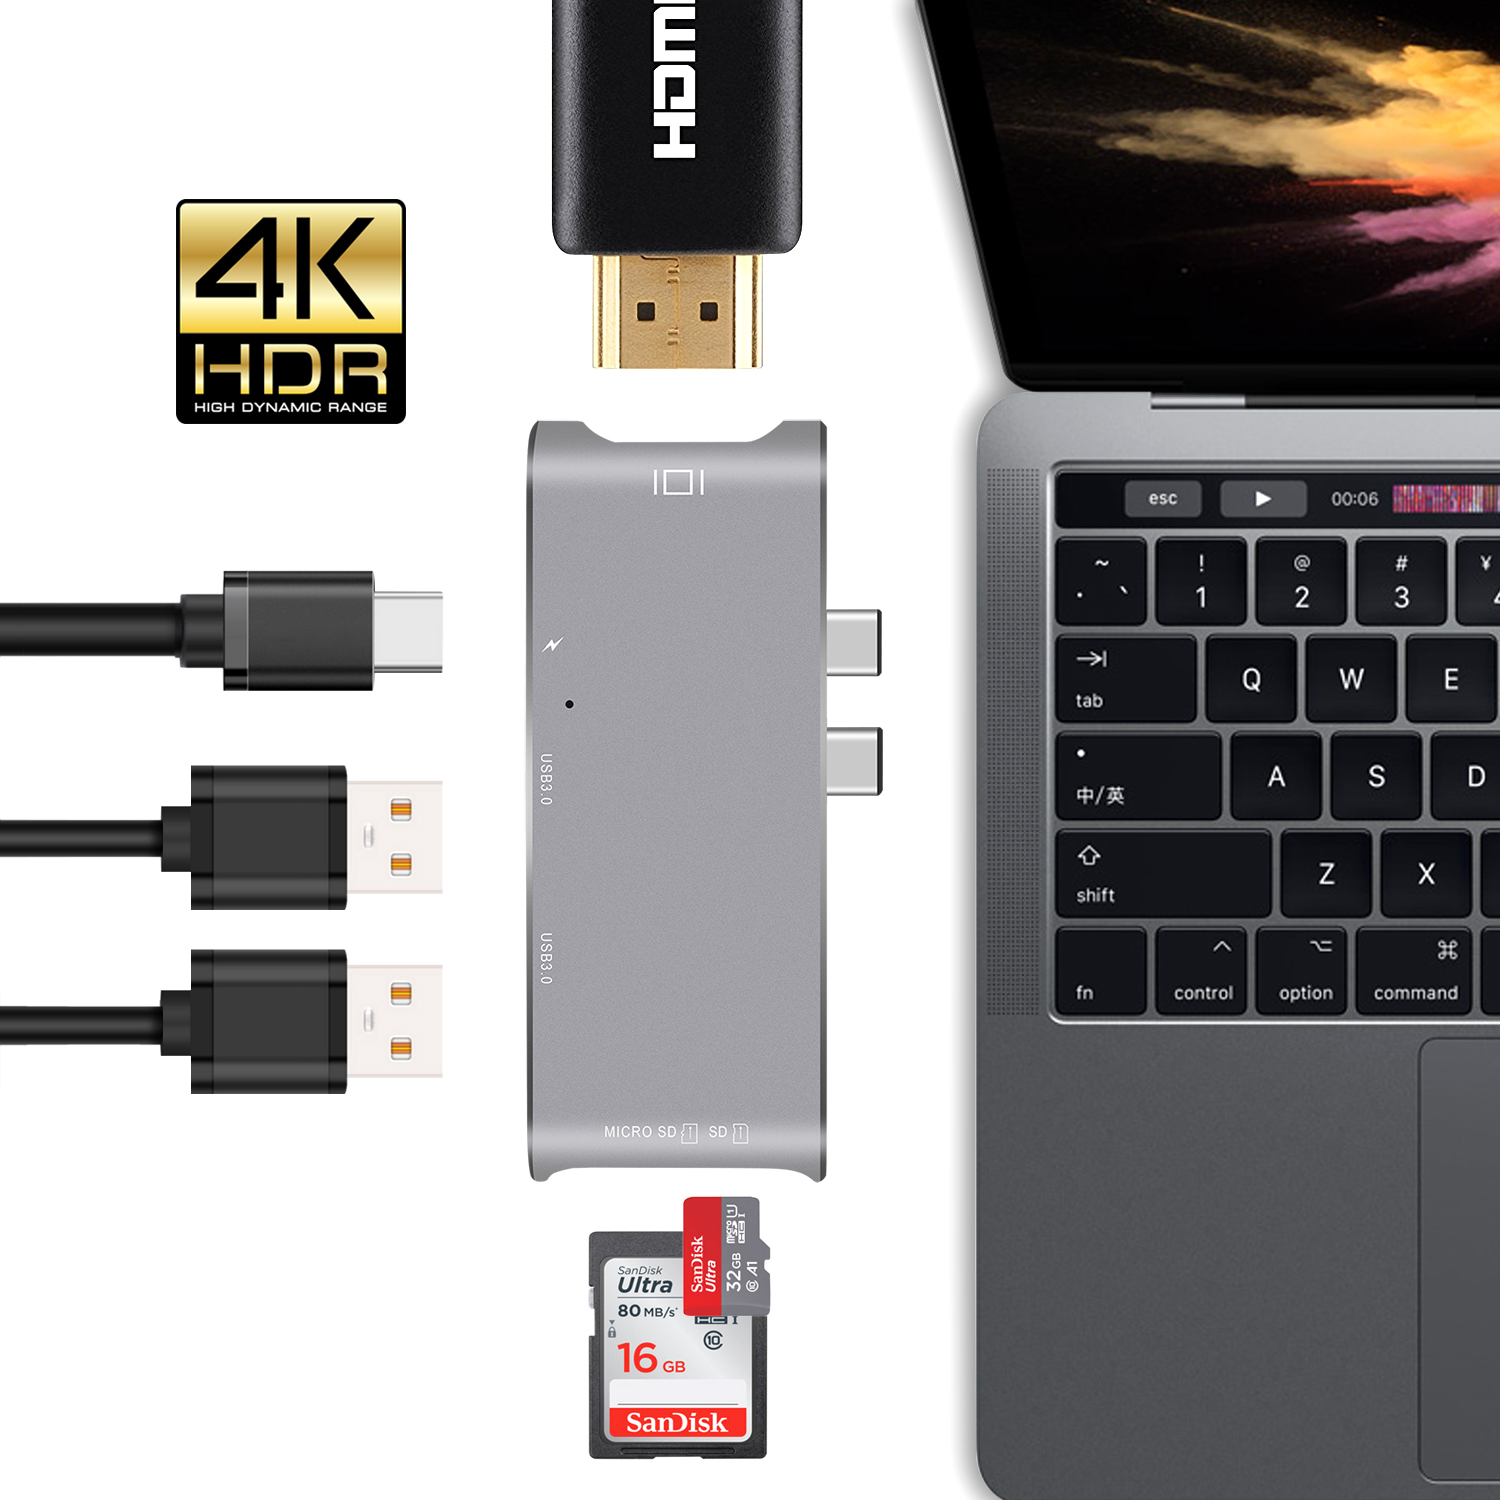 Type-C USB C to 4K HDMI USB 3.0 2.0 SD TF Card Reader PD Hub Adapter LOT for Mac